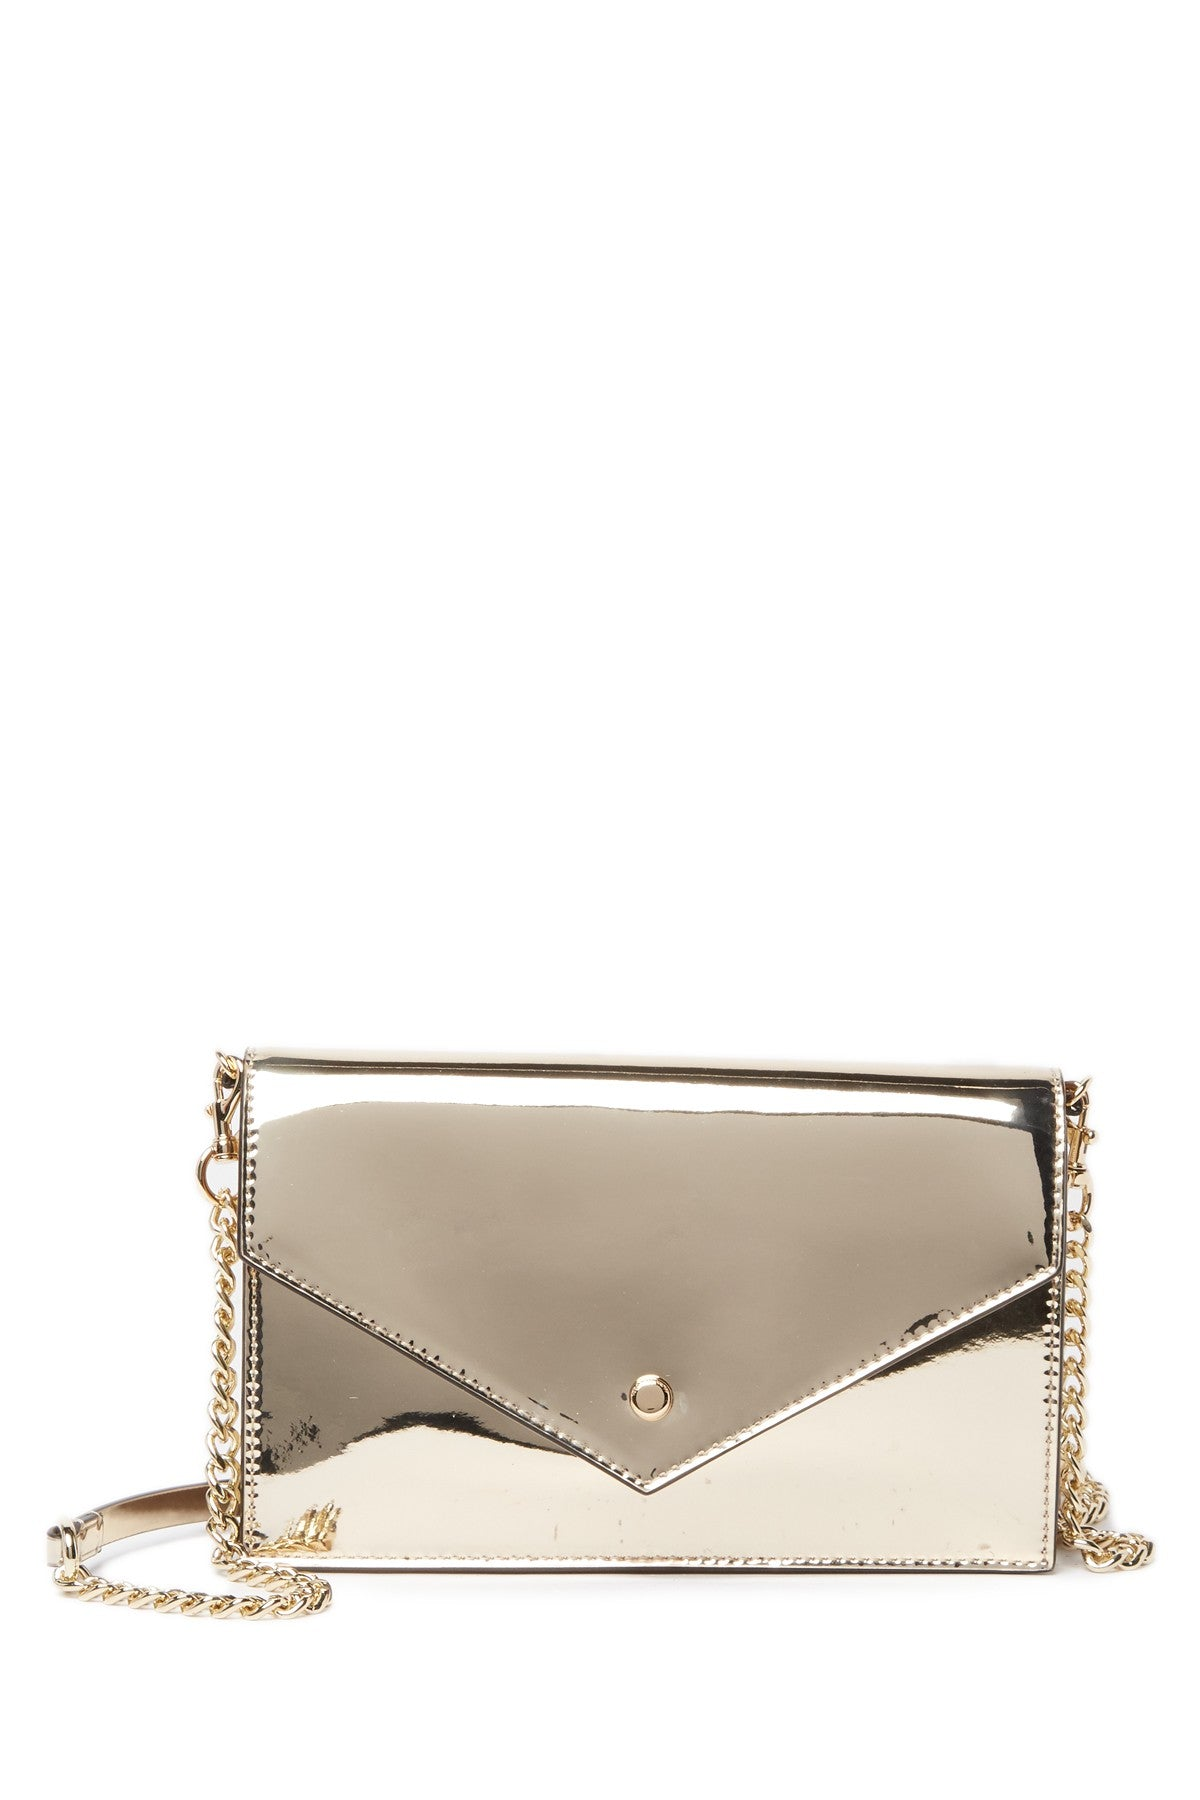 MIRROR METALLIC	WALLET XBODY